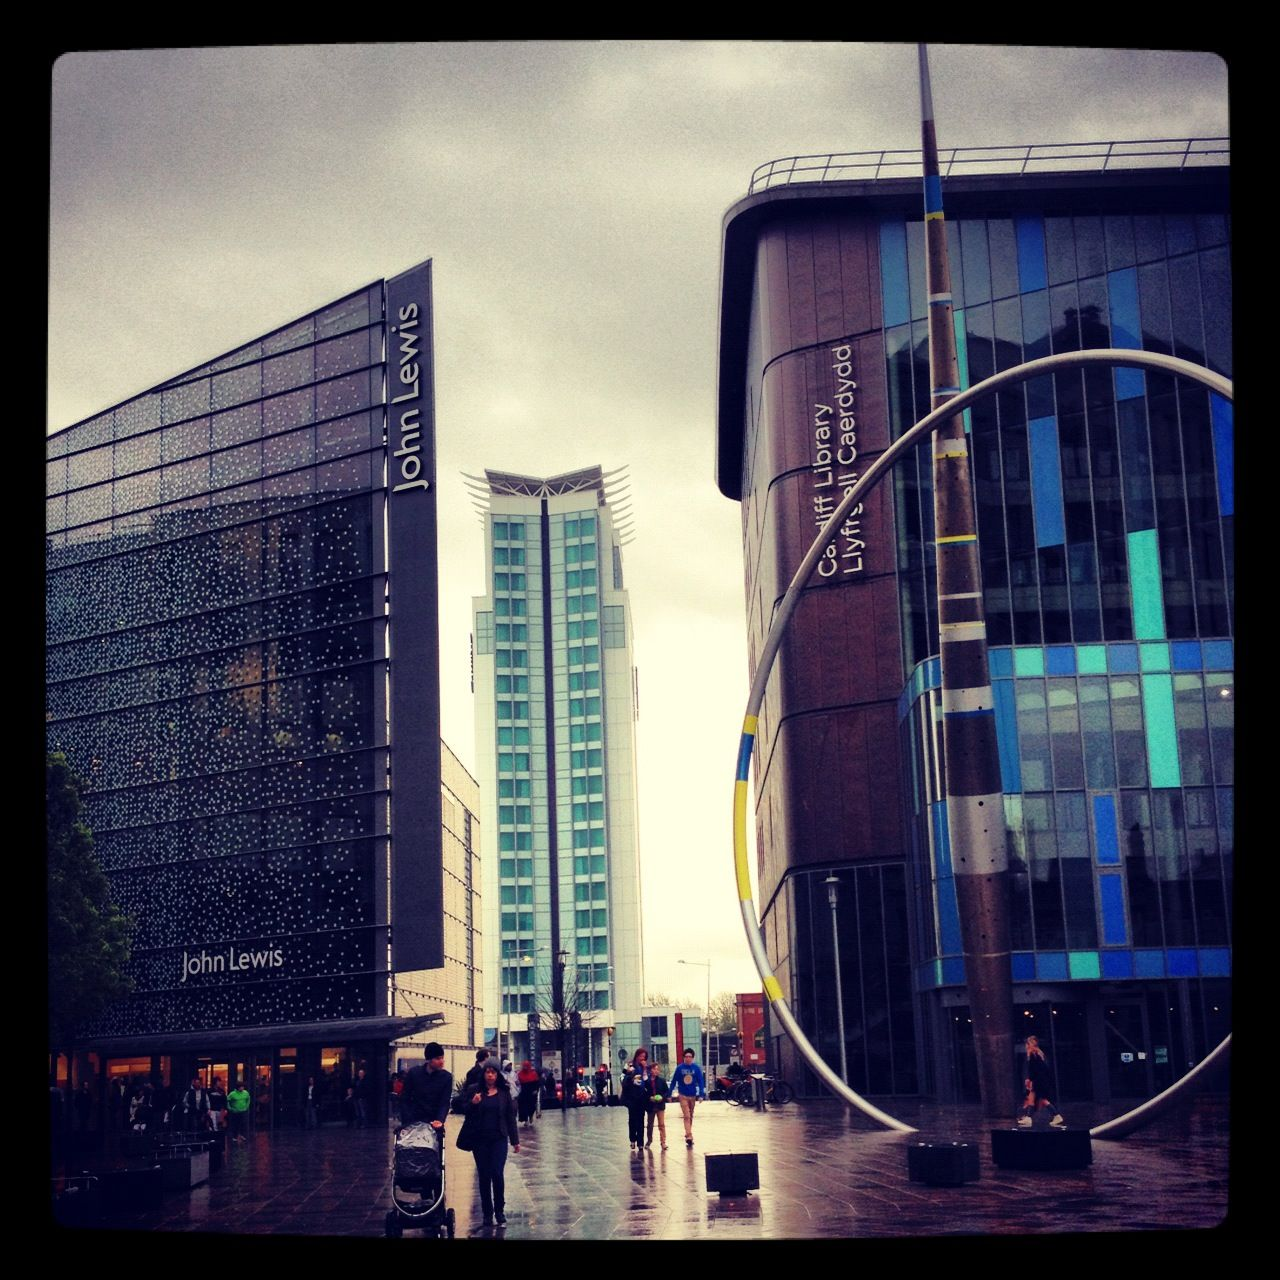 Cardiff City. The St.Davids Shopping Center, Cardiff Library, and in the background is the Radisson Blu Hotel